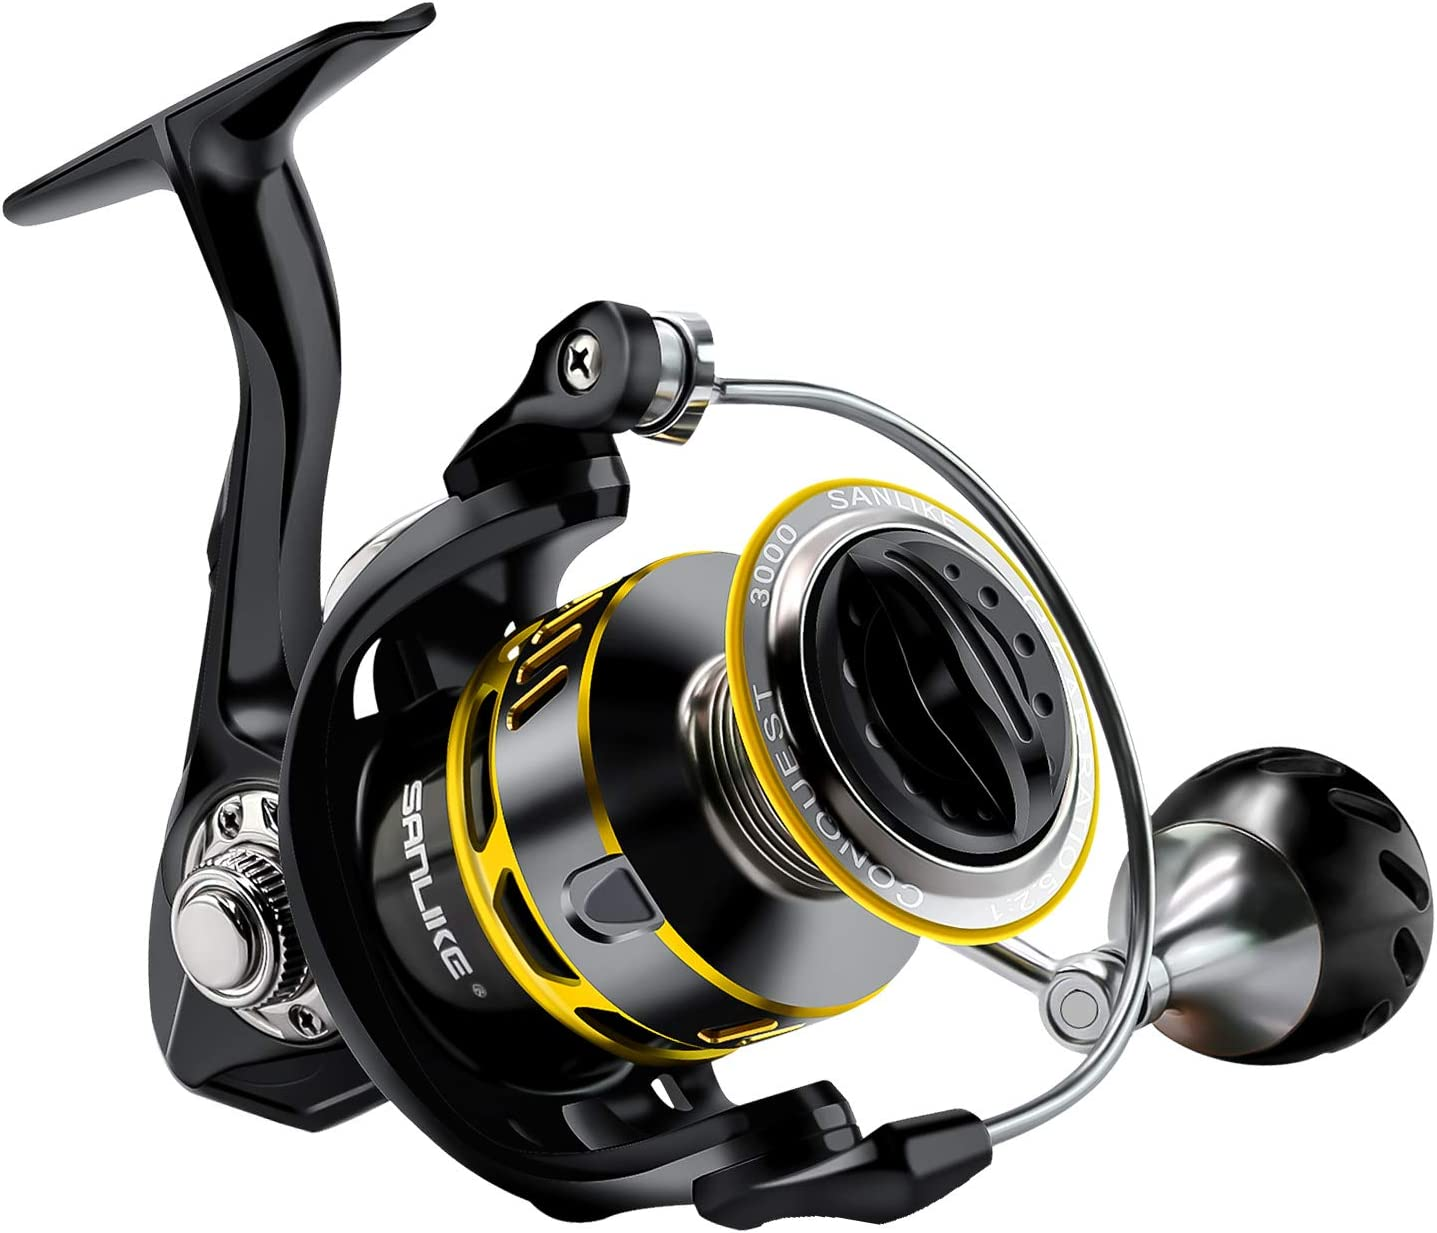 SAN Like Spinning Fishing Reel